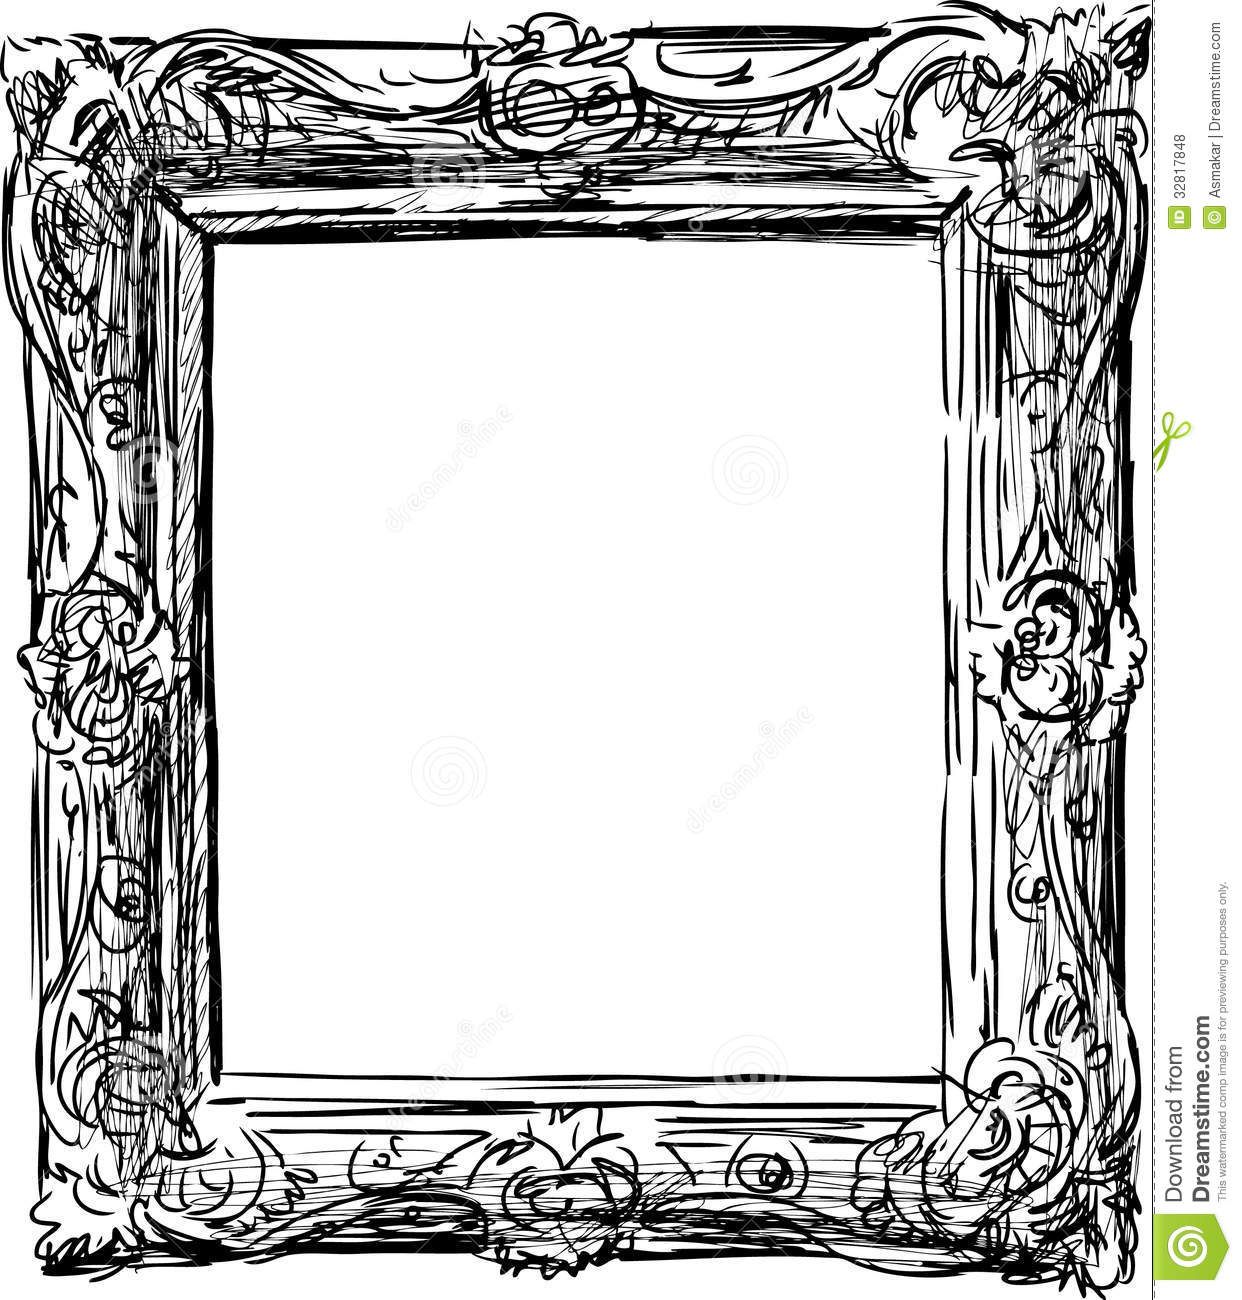 2020 other images antique frame drawing